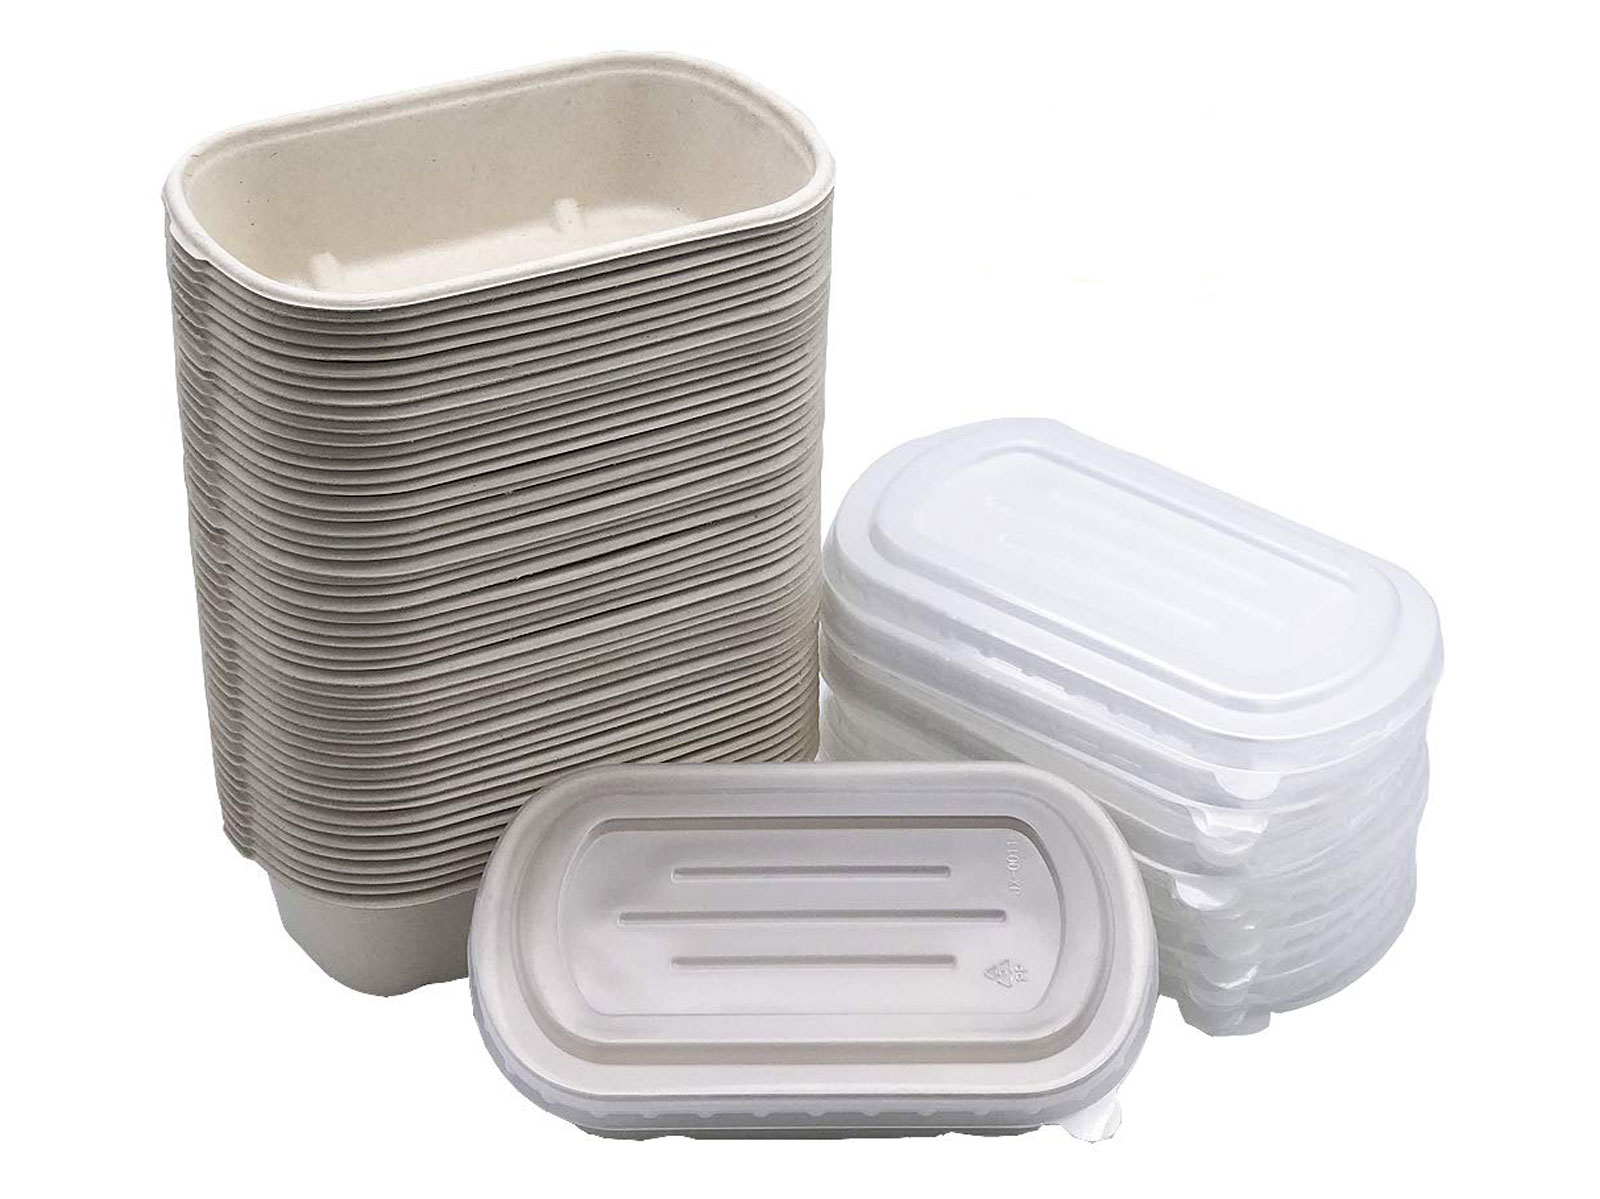 compostable boxes